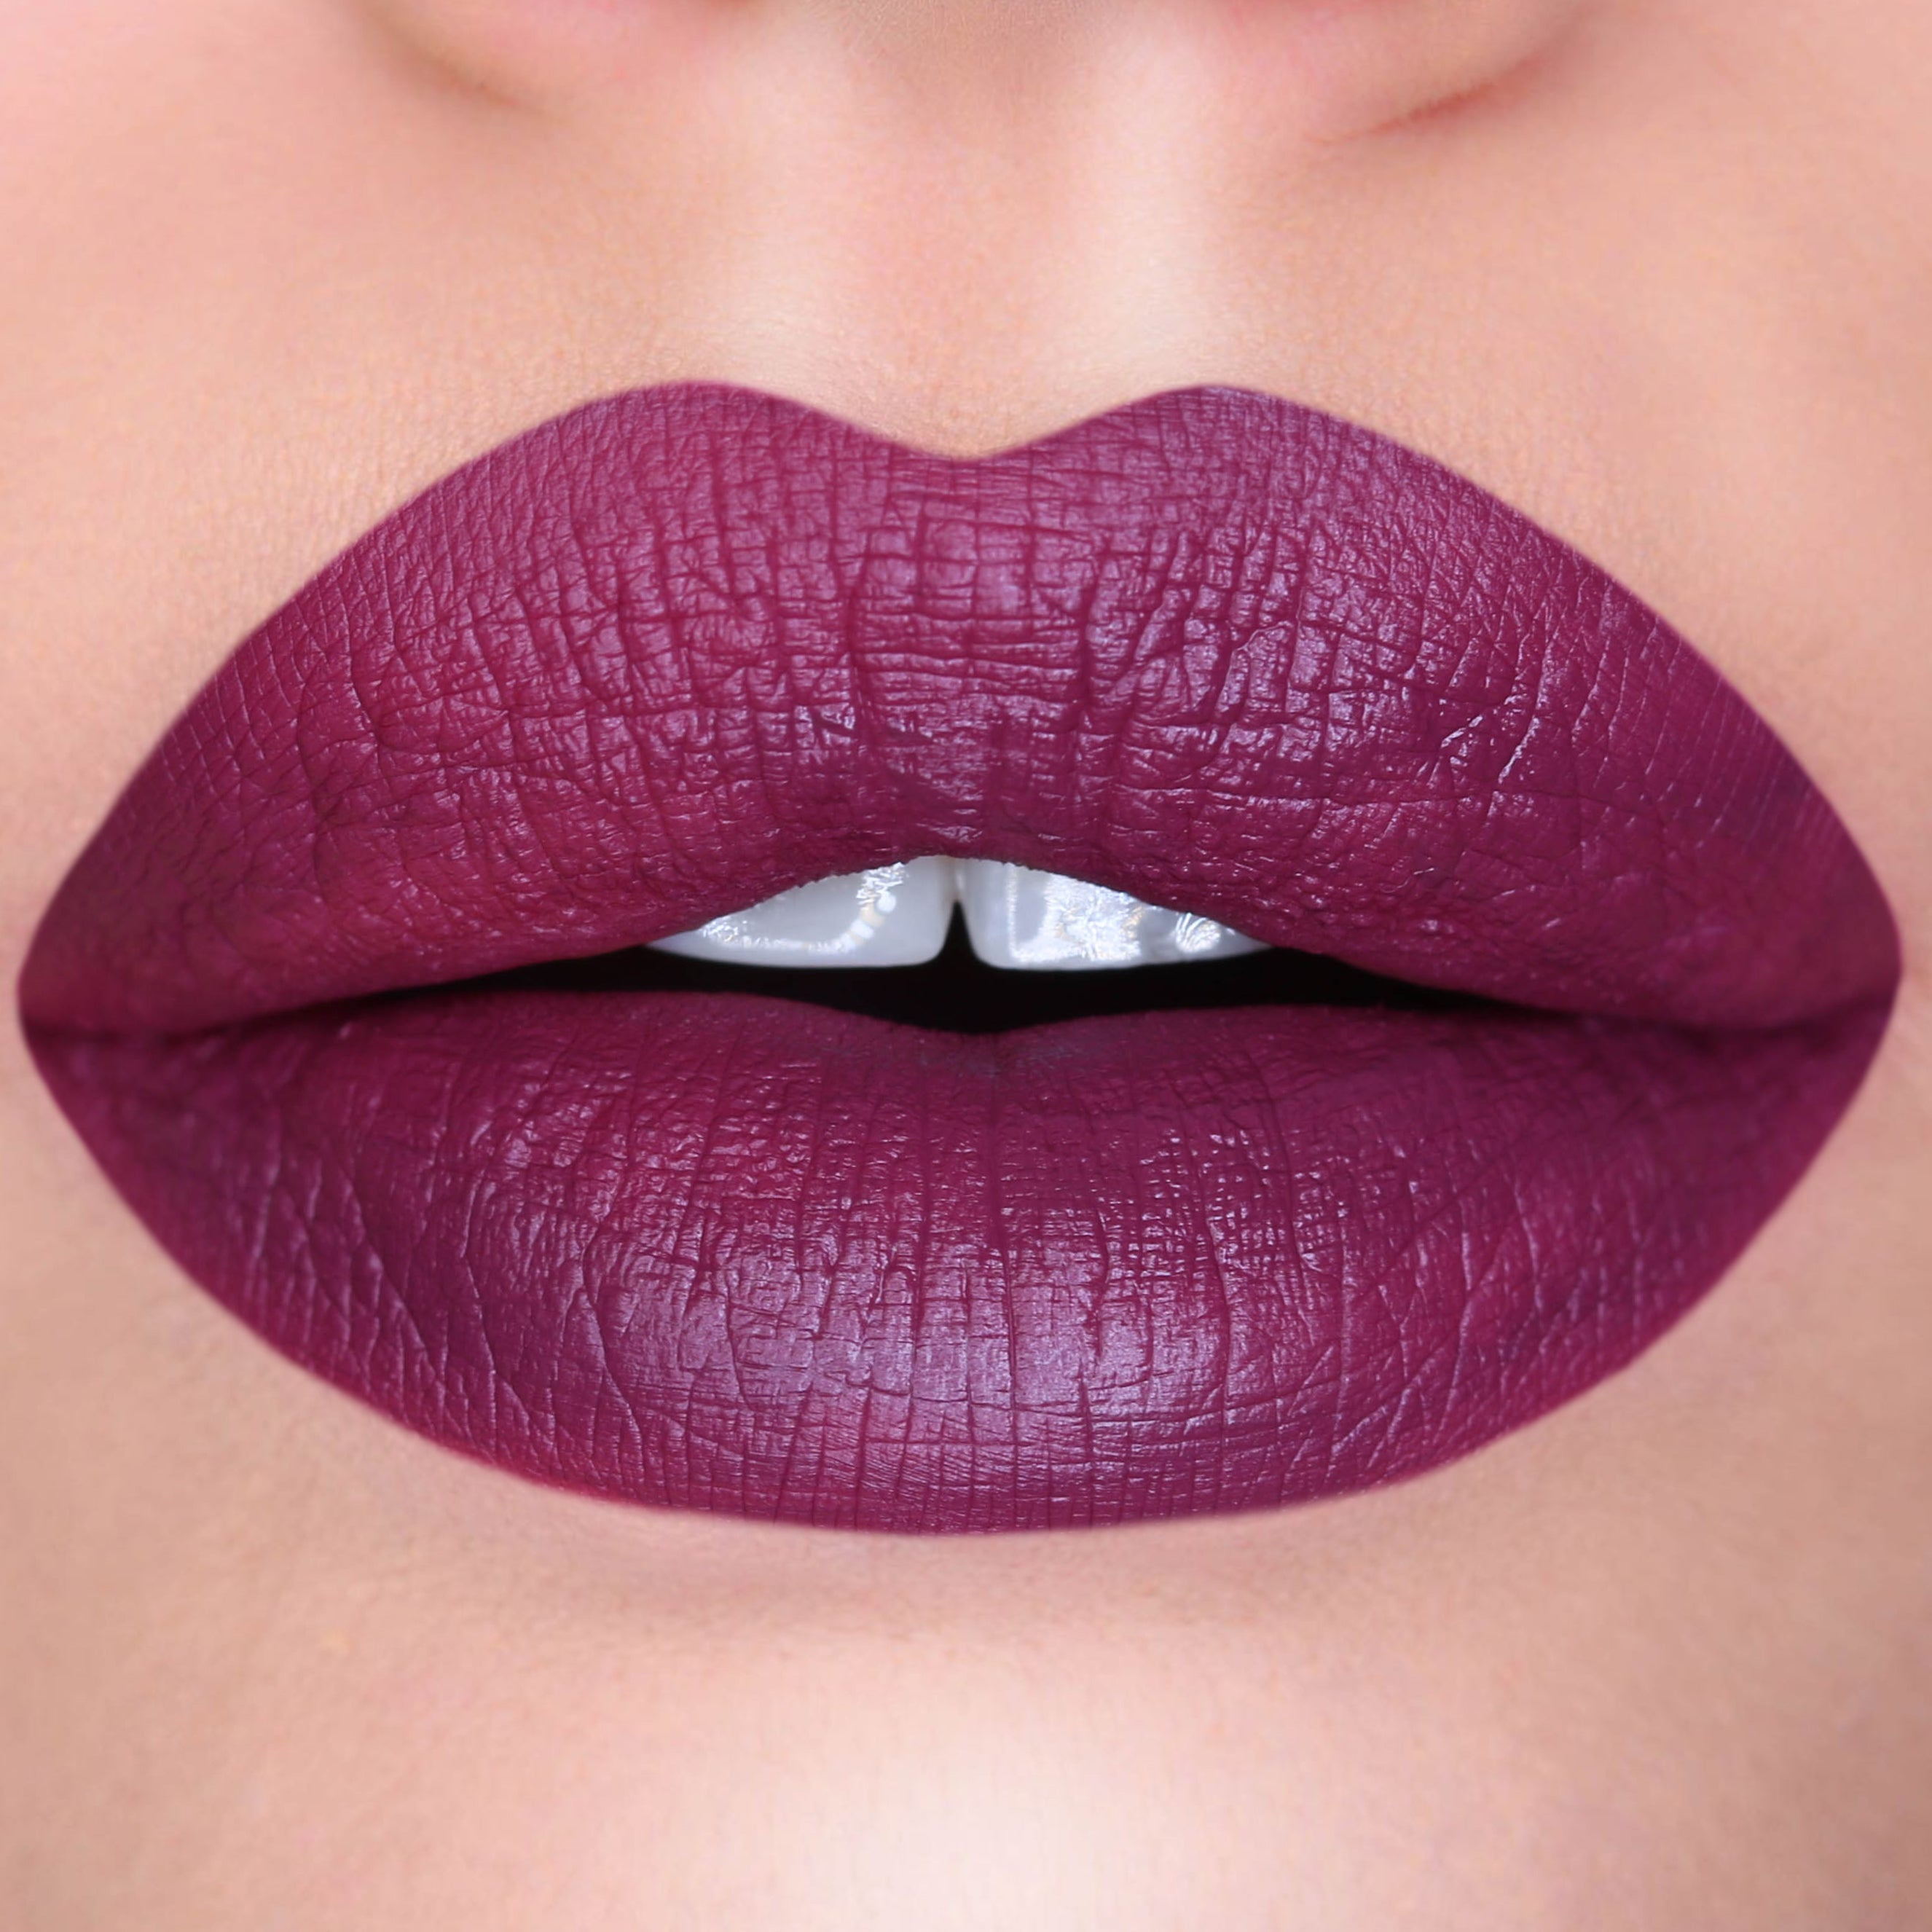 lip candy - chrissy - Candy Coat